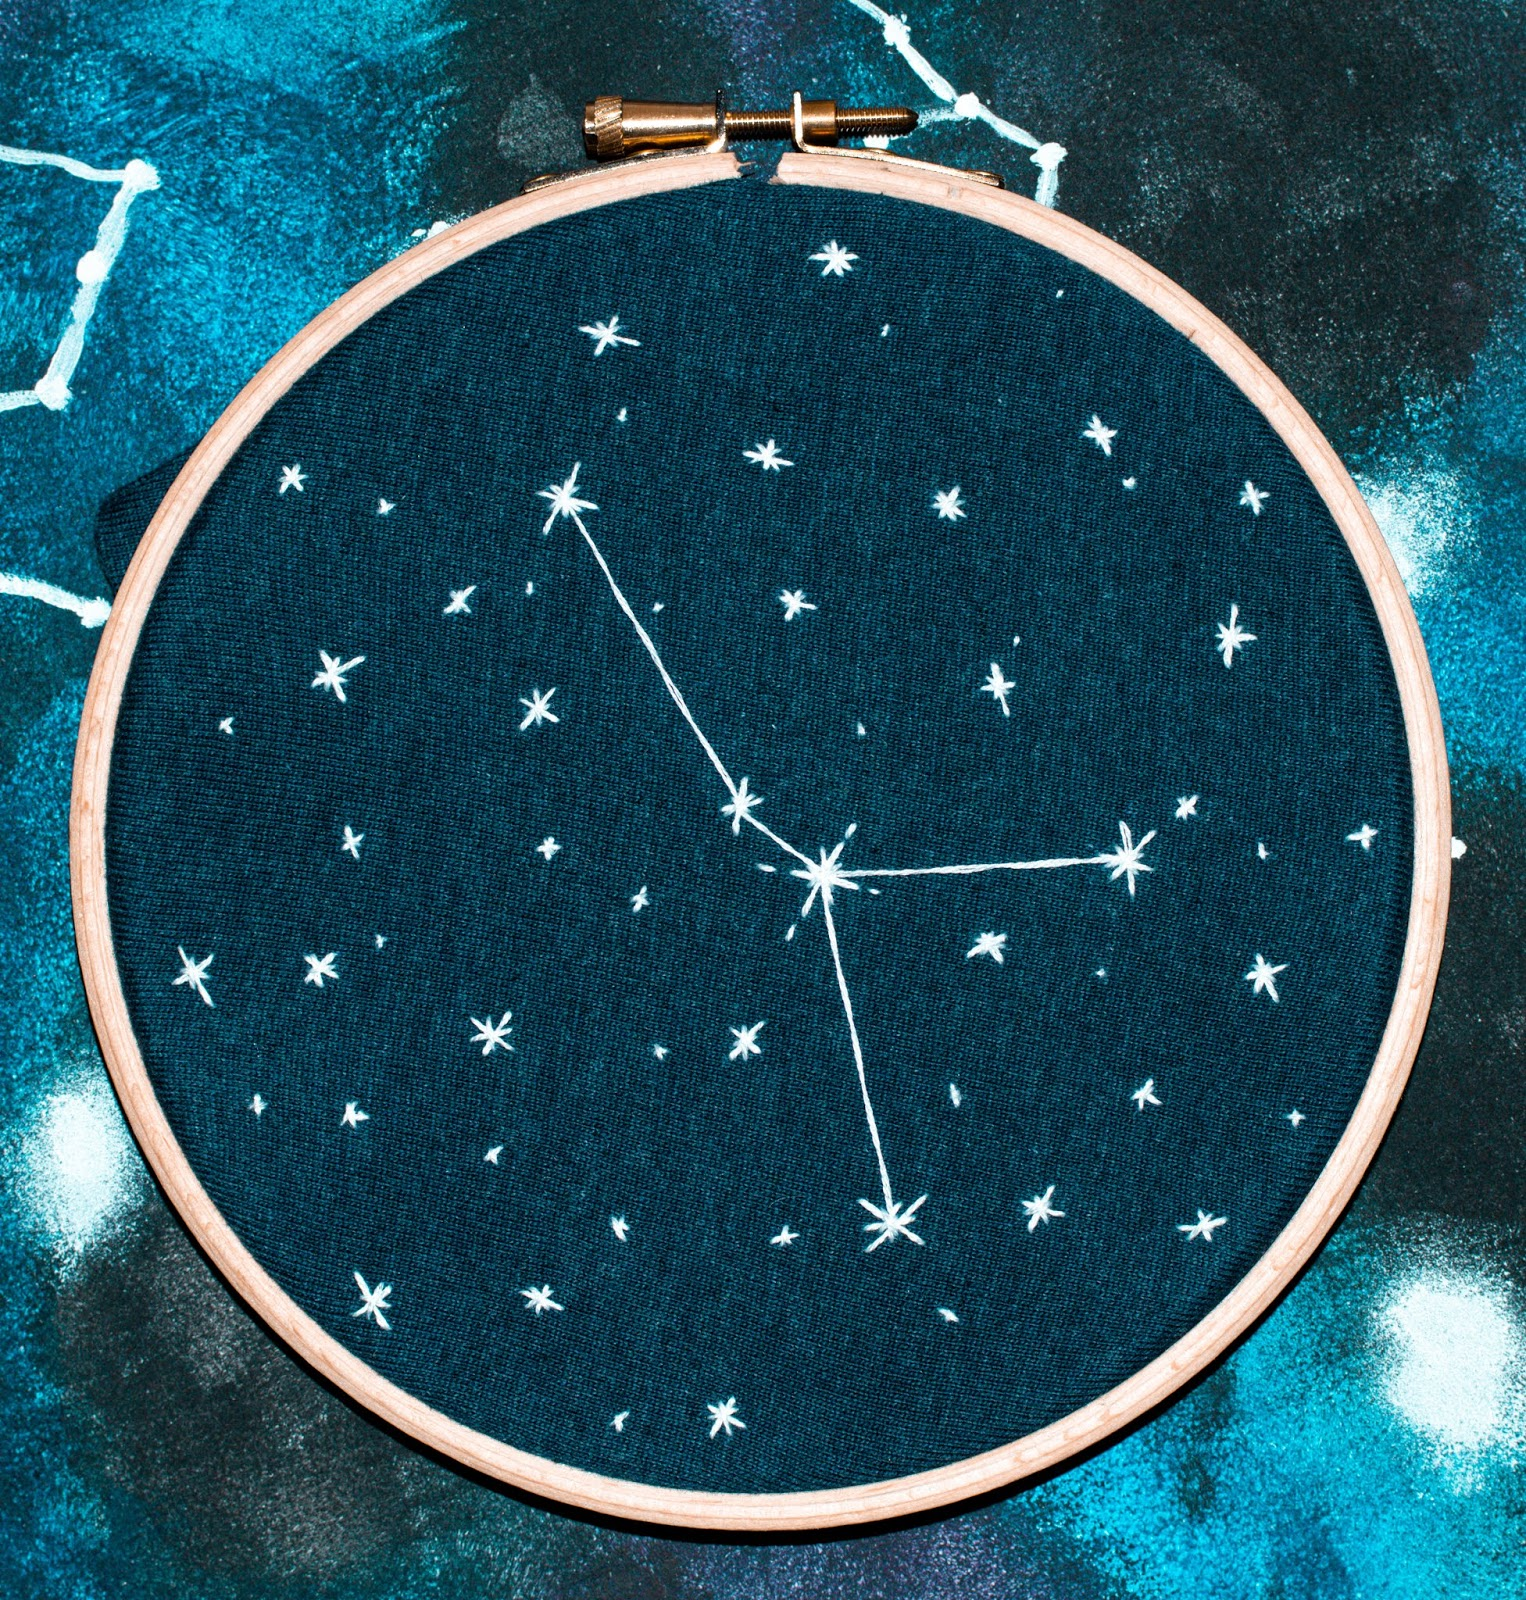 CANCER STAR CONSTELLATION EMBROIDERY BY ANNA TWENTY SEVEN